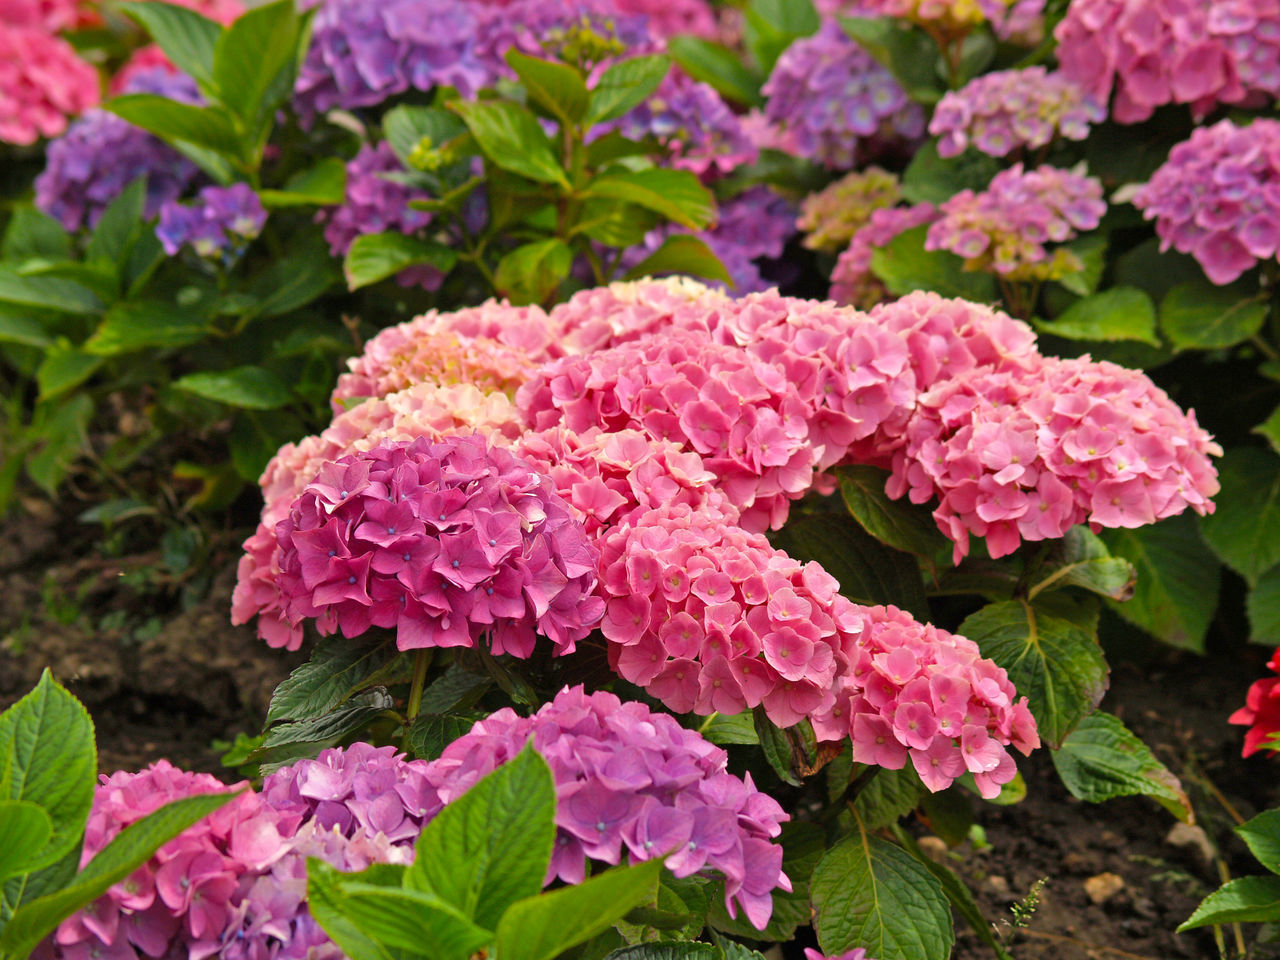 Beauty In Nature Blooming Close-up Day Environment Flower Flower Head Flowers Fragility Freshness Garden Hydrangea Hydrangea Flower Hydrangea In Bloom Leaf Nature Nature No People Outdoors Petal Pink Color Pink Flower Plant Spring Springtime